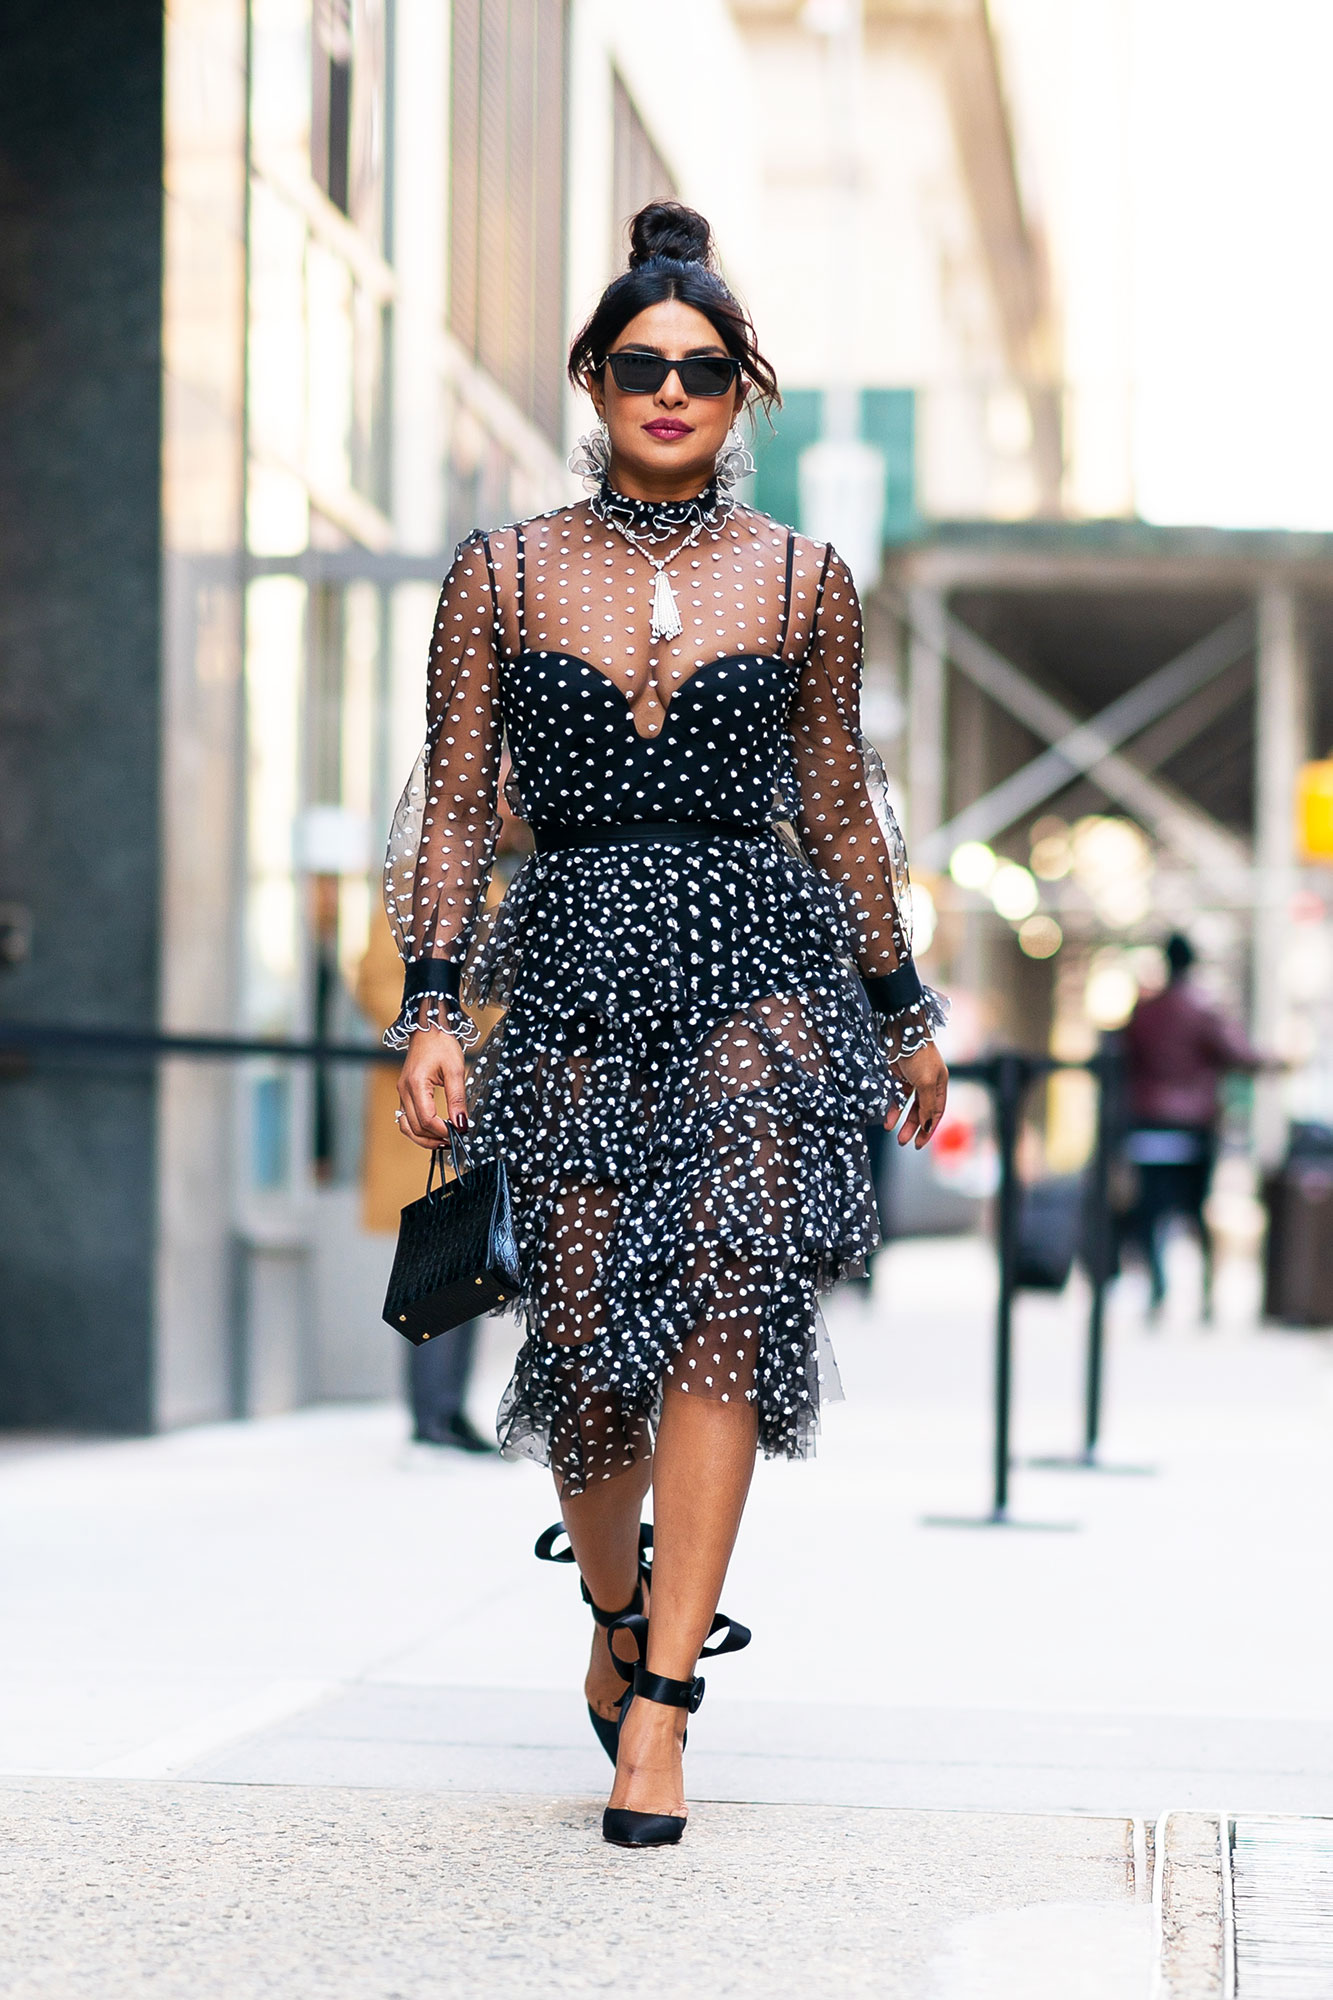 Priyanka Chopra polka dotted dress ruffles new york city - The brunette beauty stunned in a frilly Philosophy di Lorenzo Serafini sheer frock and a La Perla bodysuit in NYC. Proving more is more, she accessorized with a black Medea top-handle bag, bow-adorned Christian Louboutin heels and Chopard jewels, but we're particularly obsessed with her center-parted topknot.